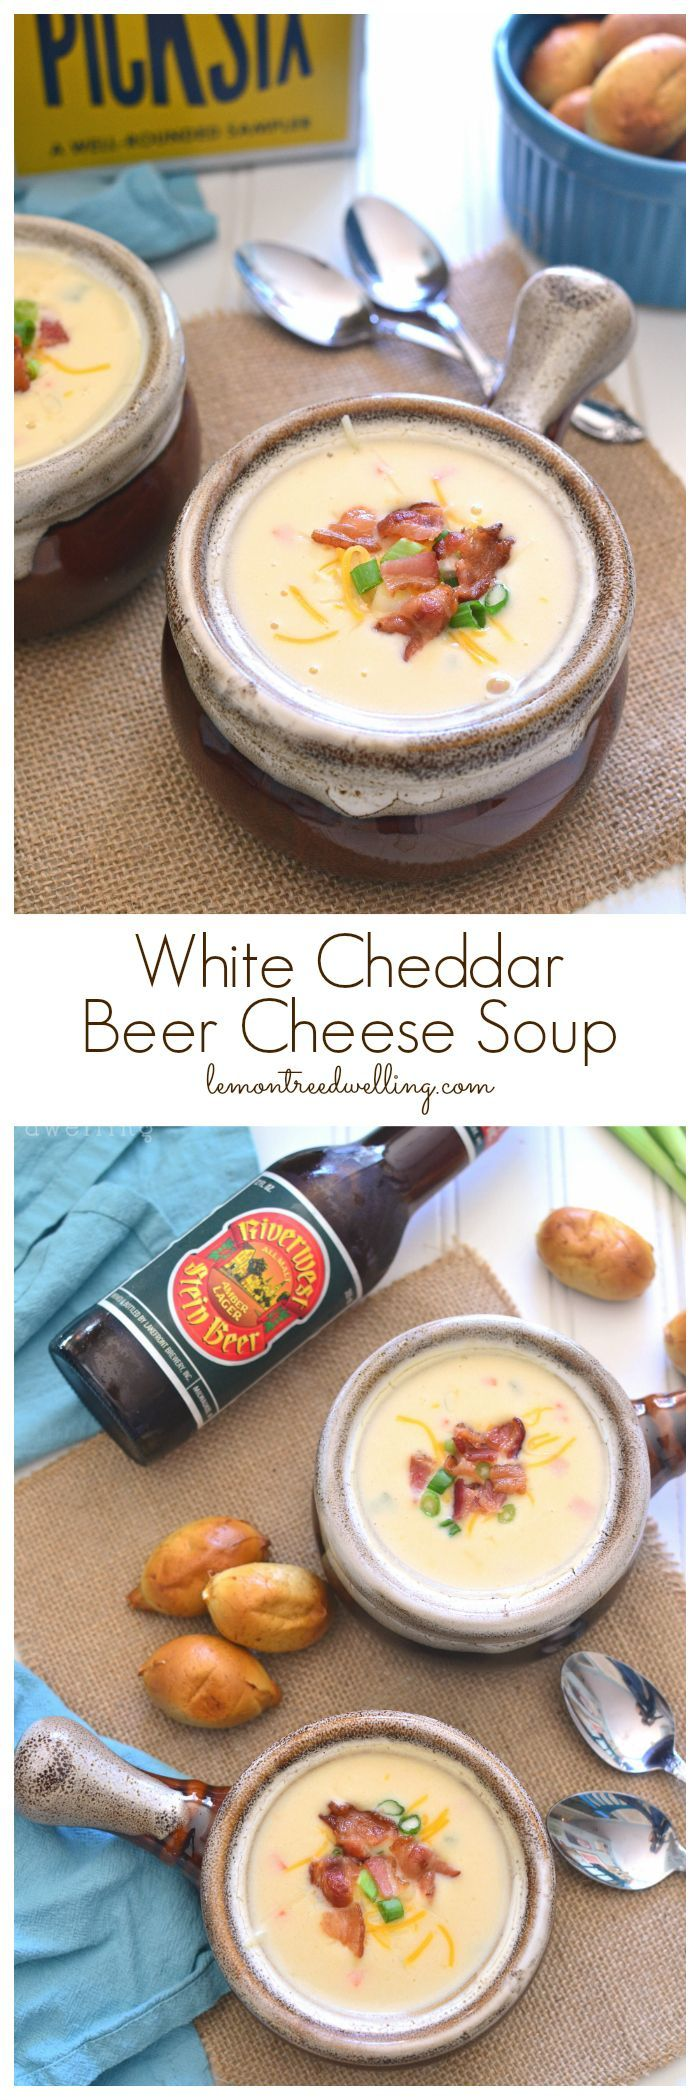 The BEST EVER White Cheddar Beer Cheese Soup! This soup is packed with flavor, easy to make, and perfect for the cold months ahead!